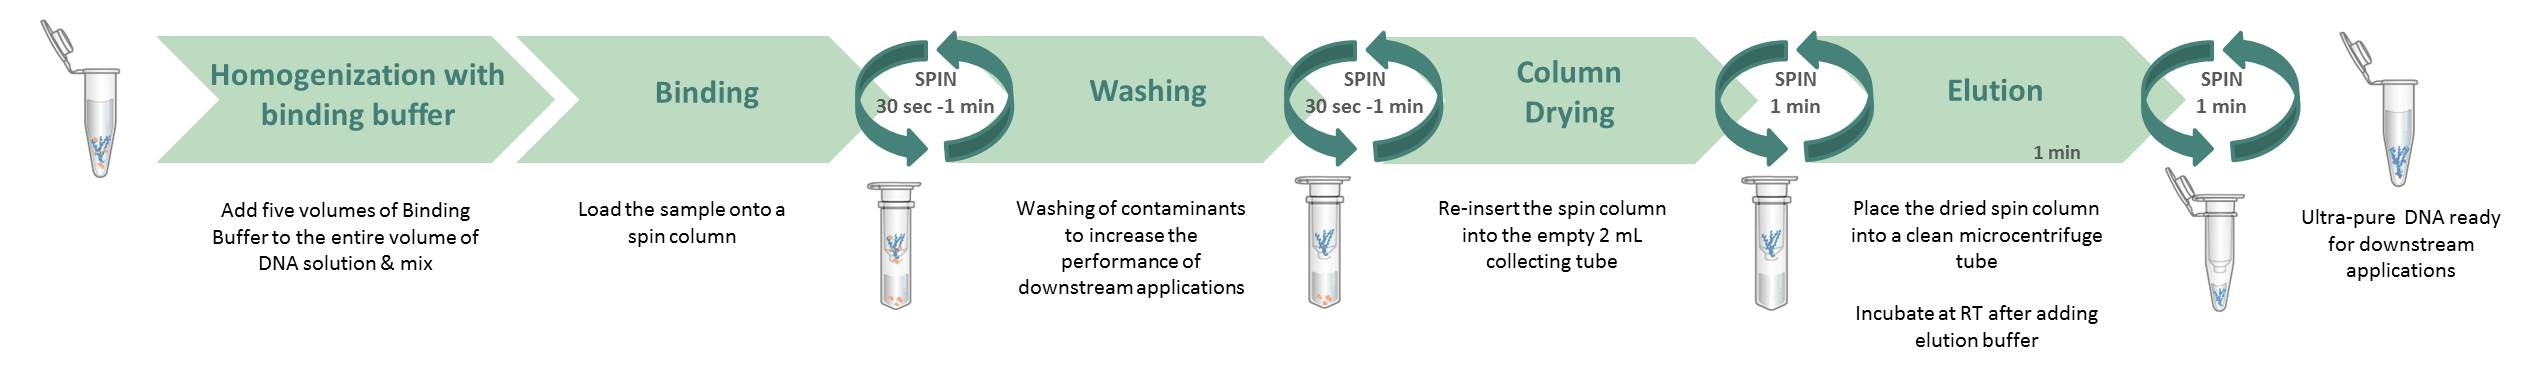 Gelpure_purification from reactions